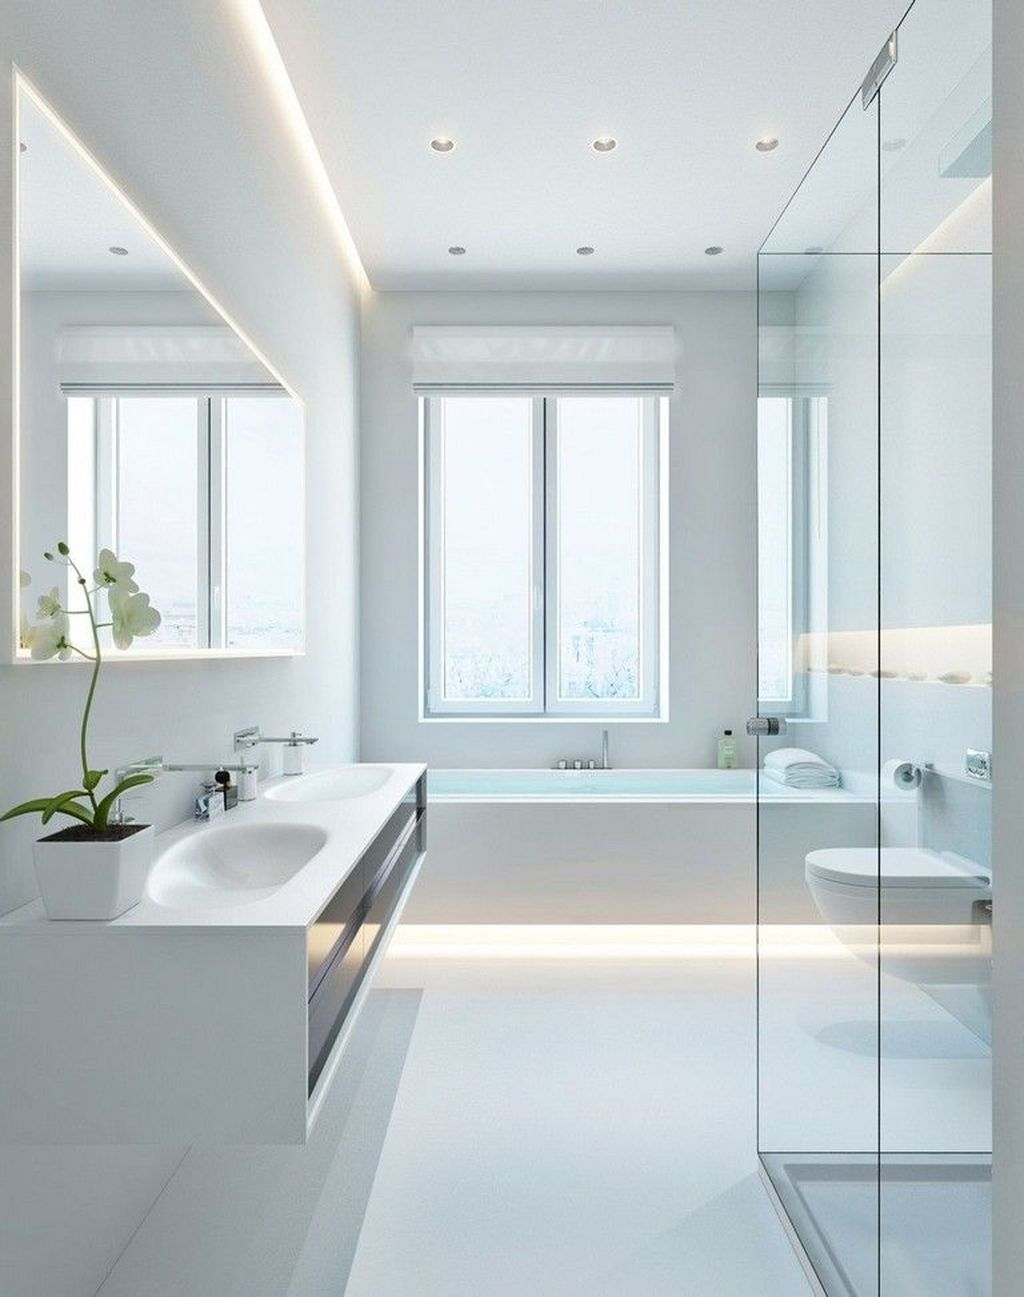 Fascinating Minimalist Bathroom Decoration Ideas 26